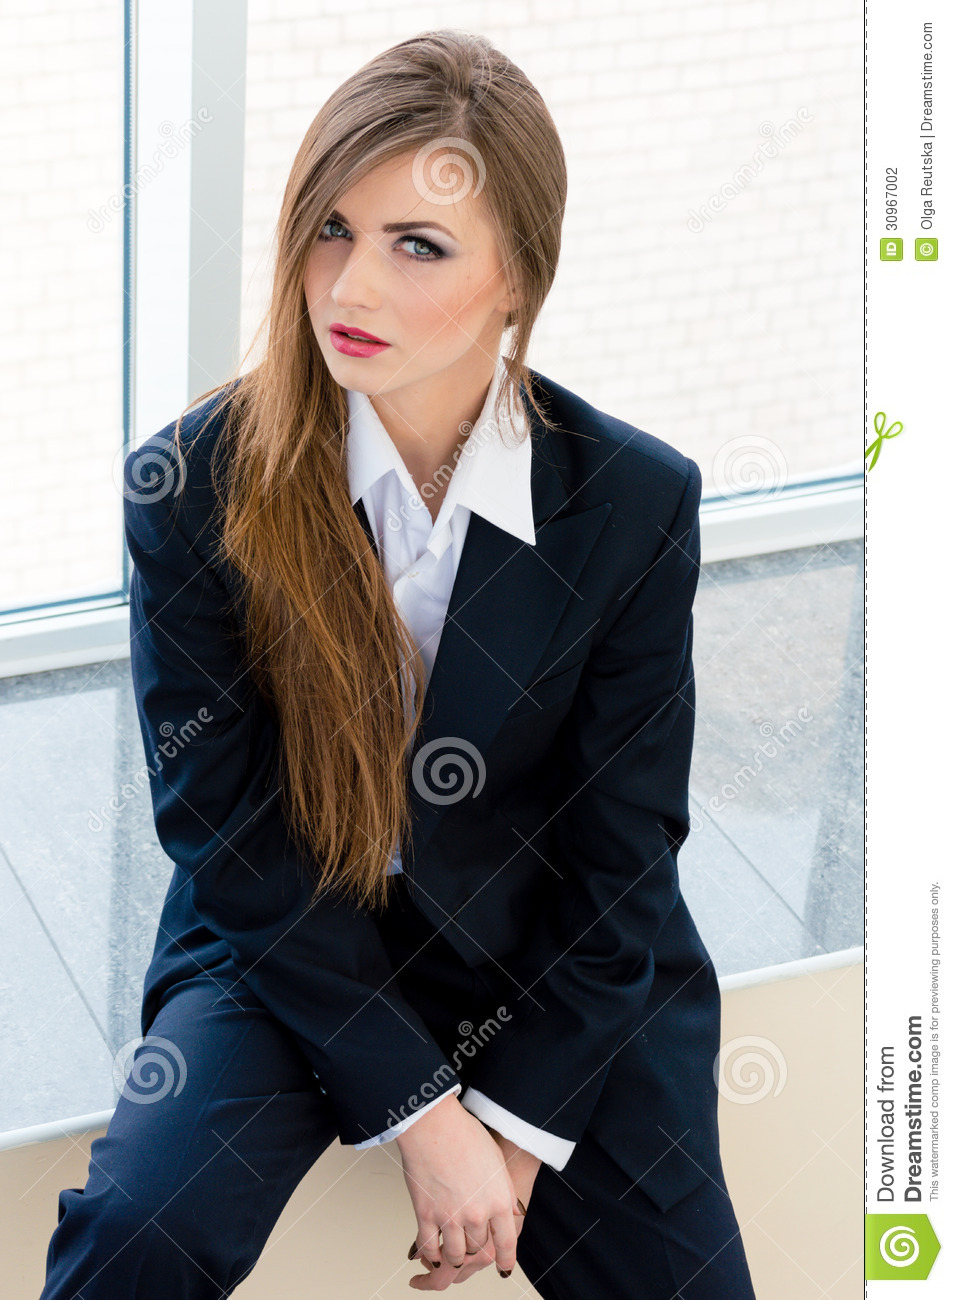 young-business-woman-wearing-man-s-suit-office-businesswoman-looking-bossy-30967002.jpg